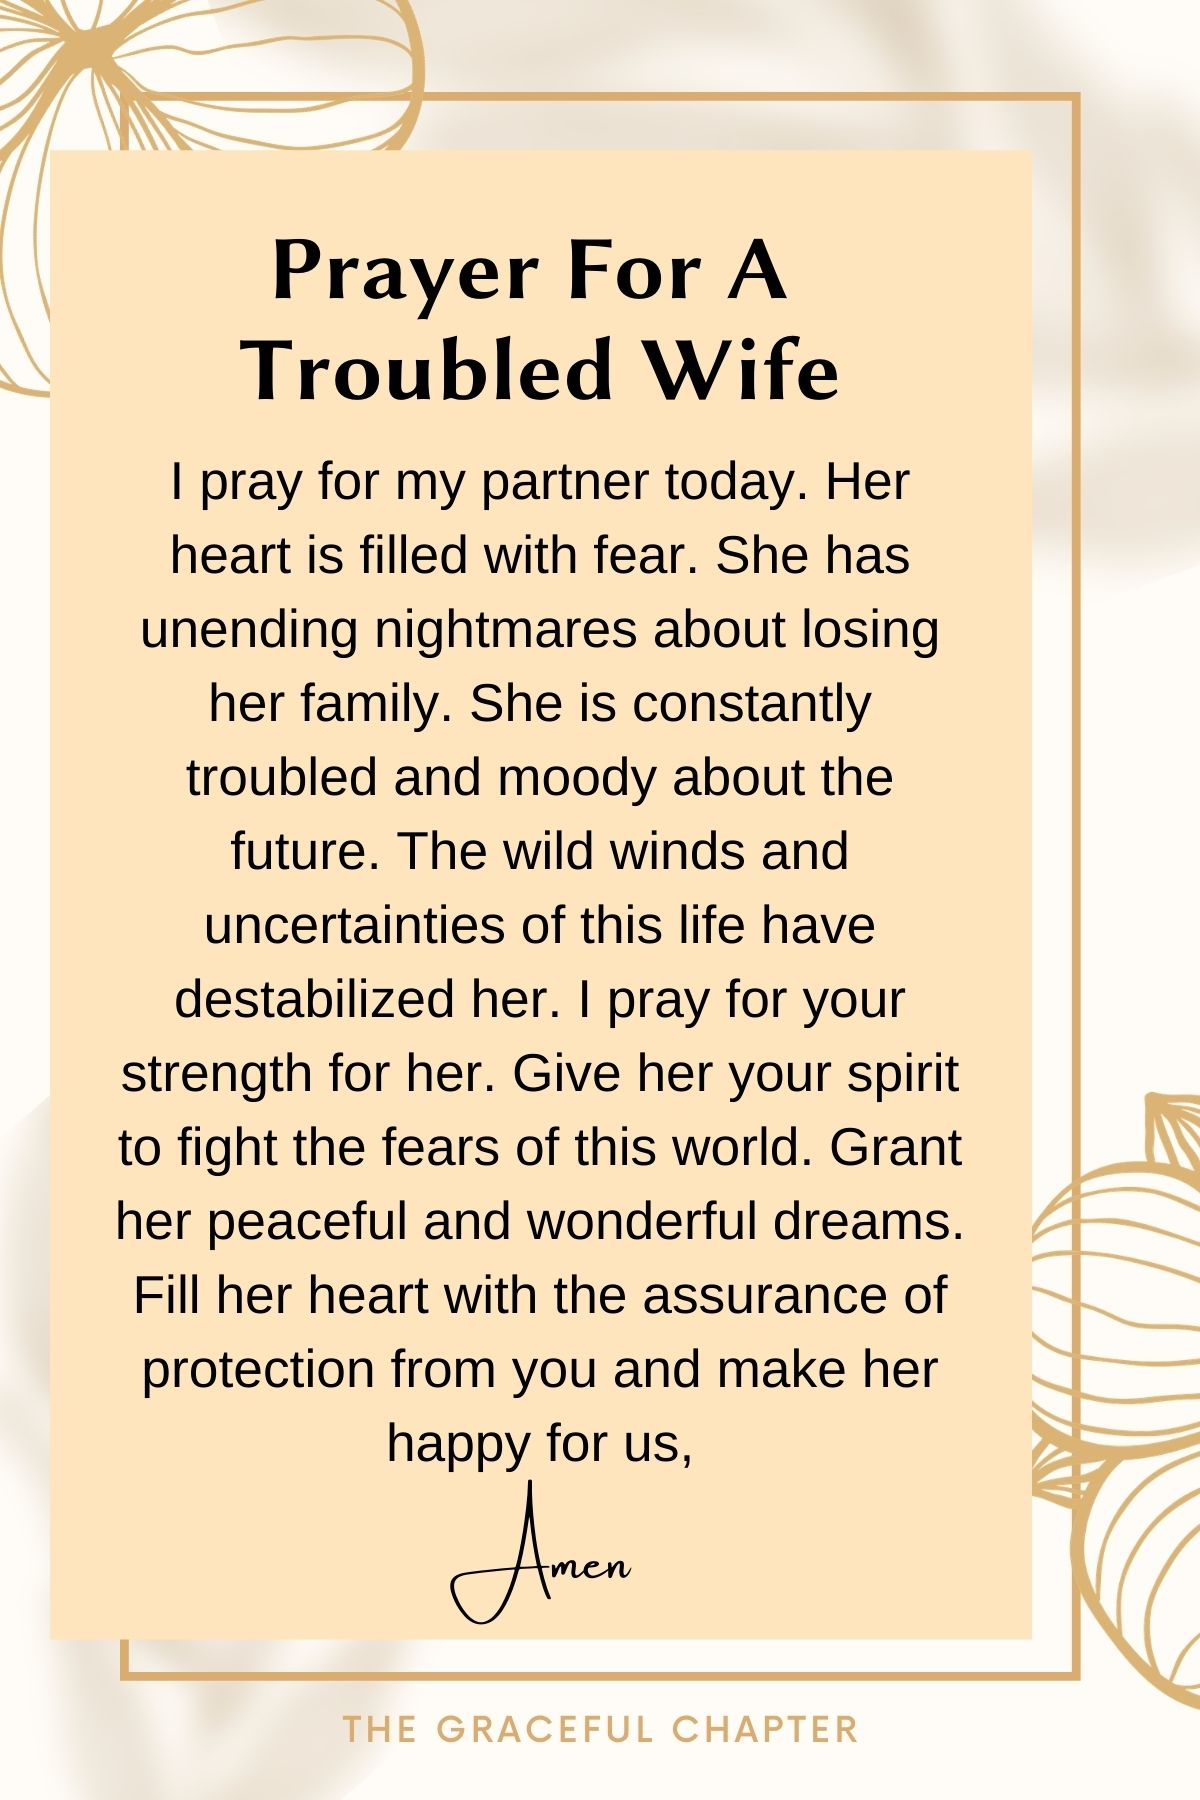 Prayer for a troubled wife